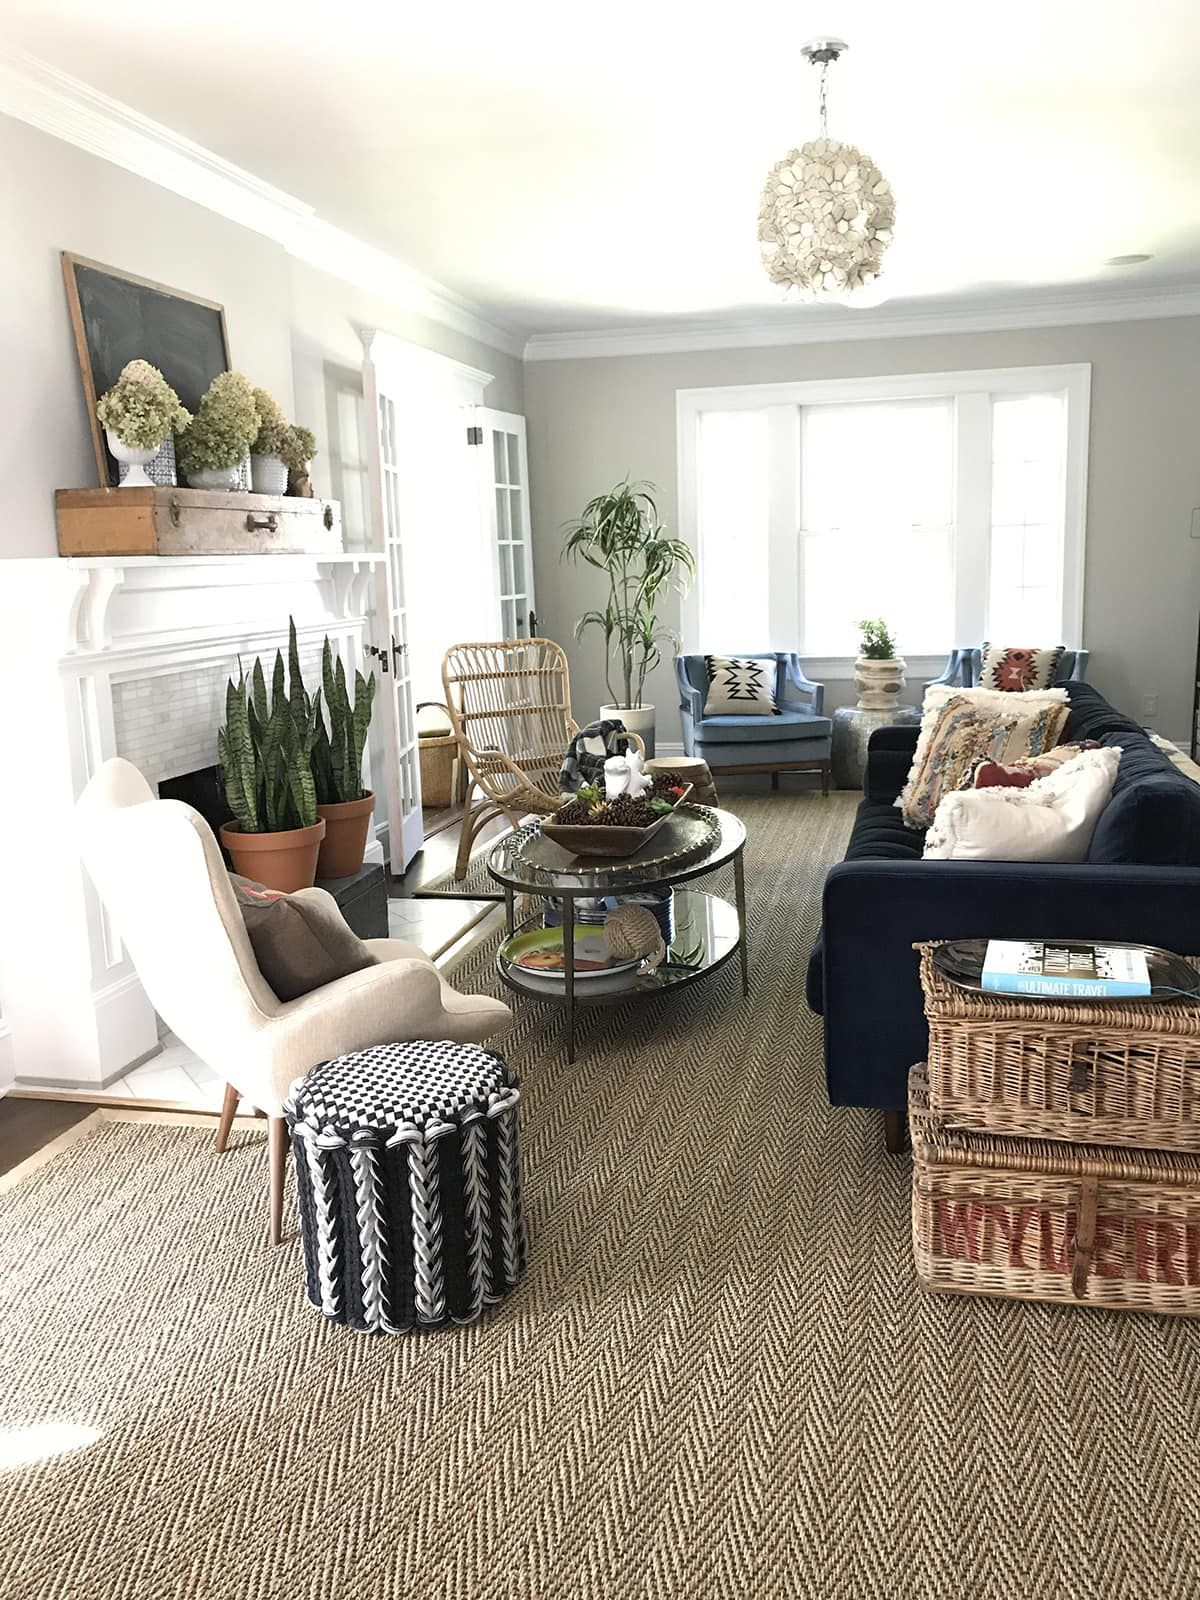 Better Homes And Gardens Stylemaker And Christmas Ideas Better Homes Gardens Home Home Garden